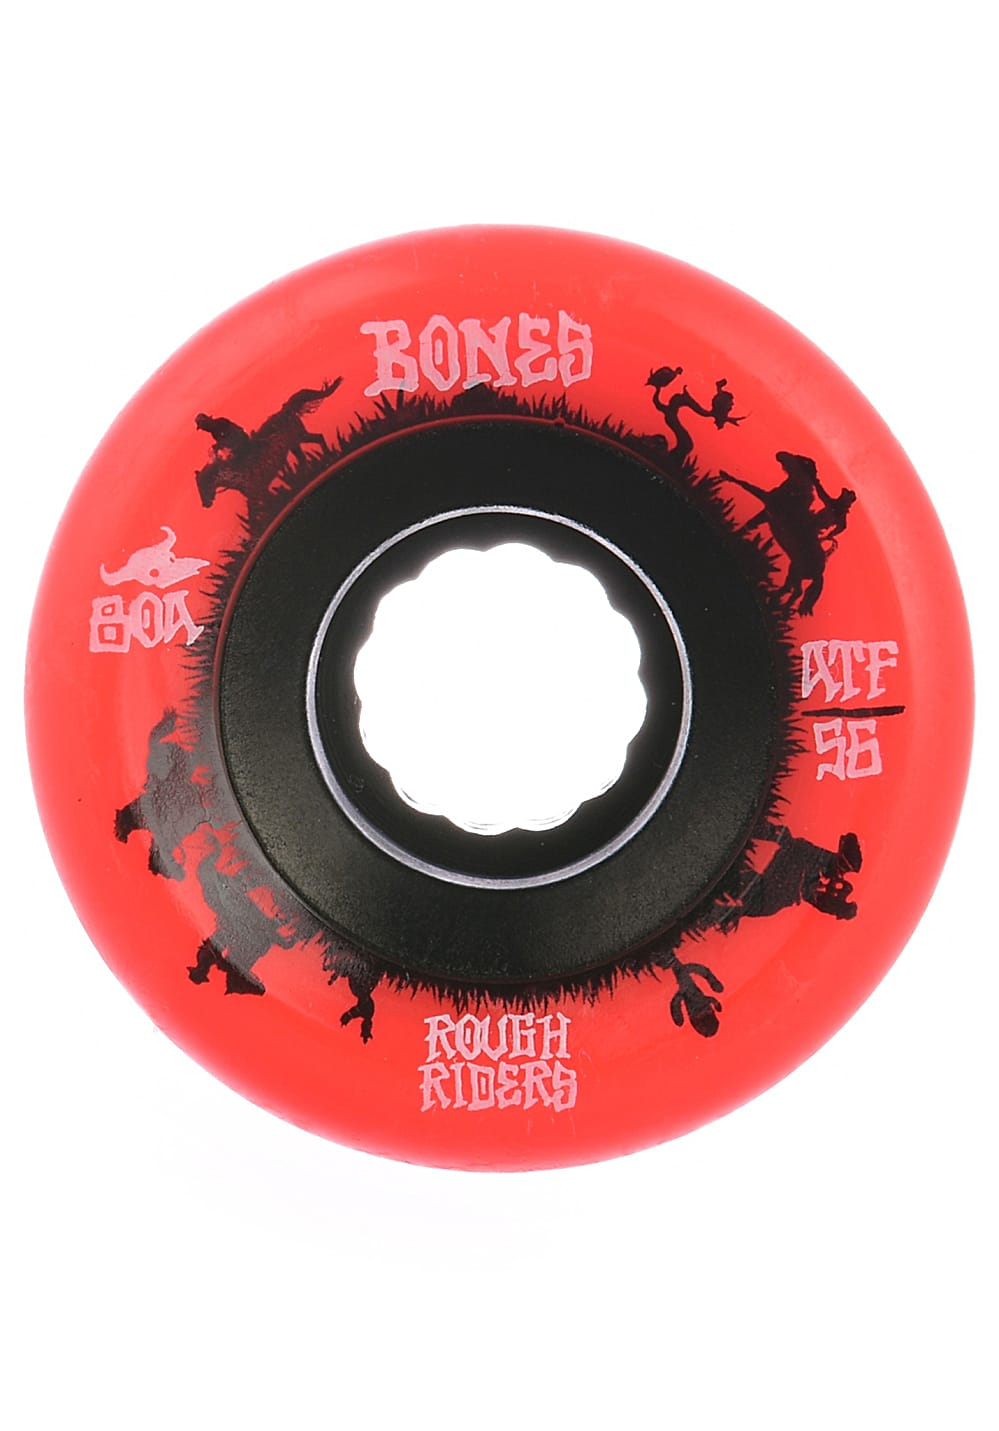 Planet Sports   BONES Rough Riders Wranglers 80A 59mm Skate Rollen – Rot